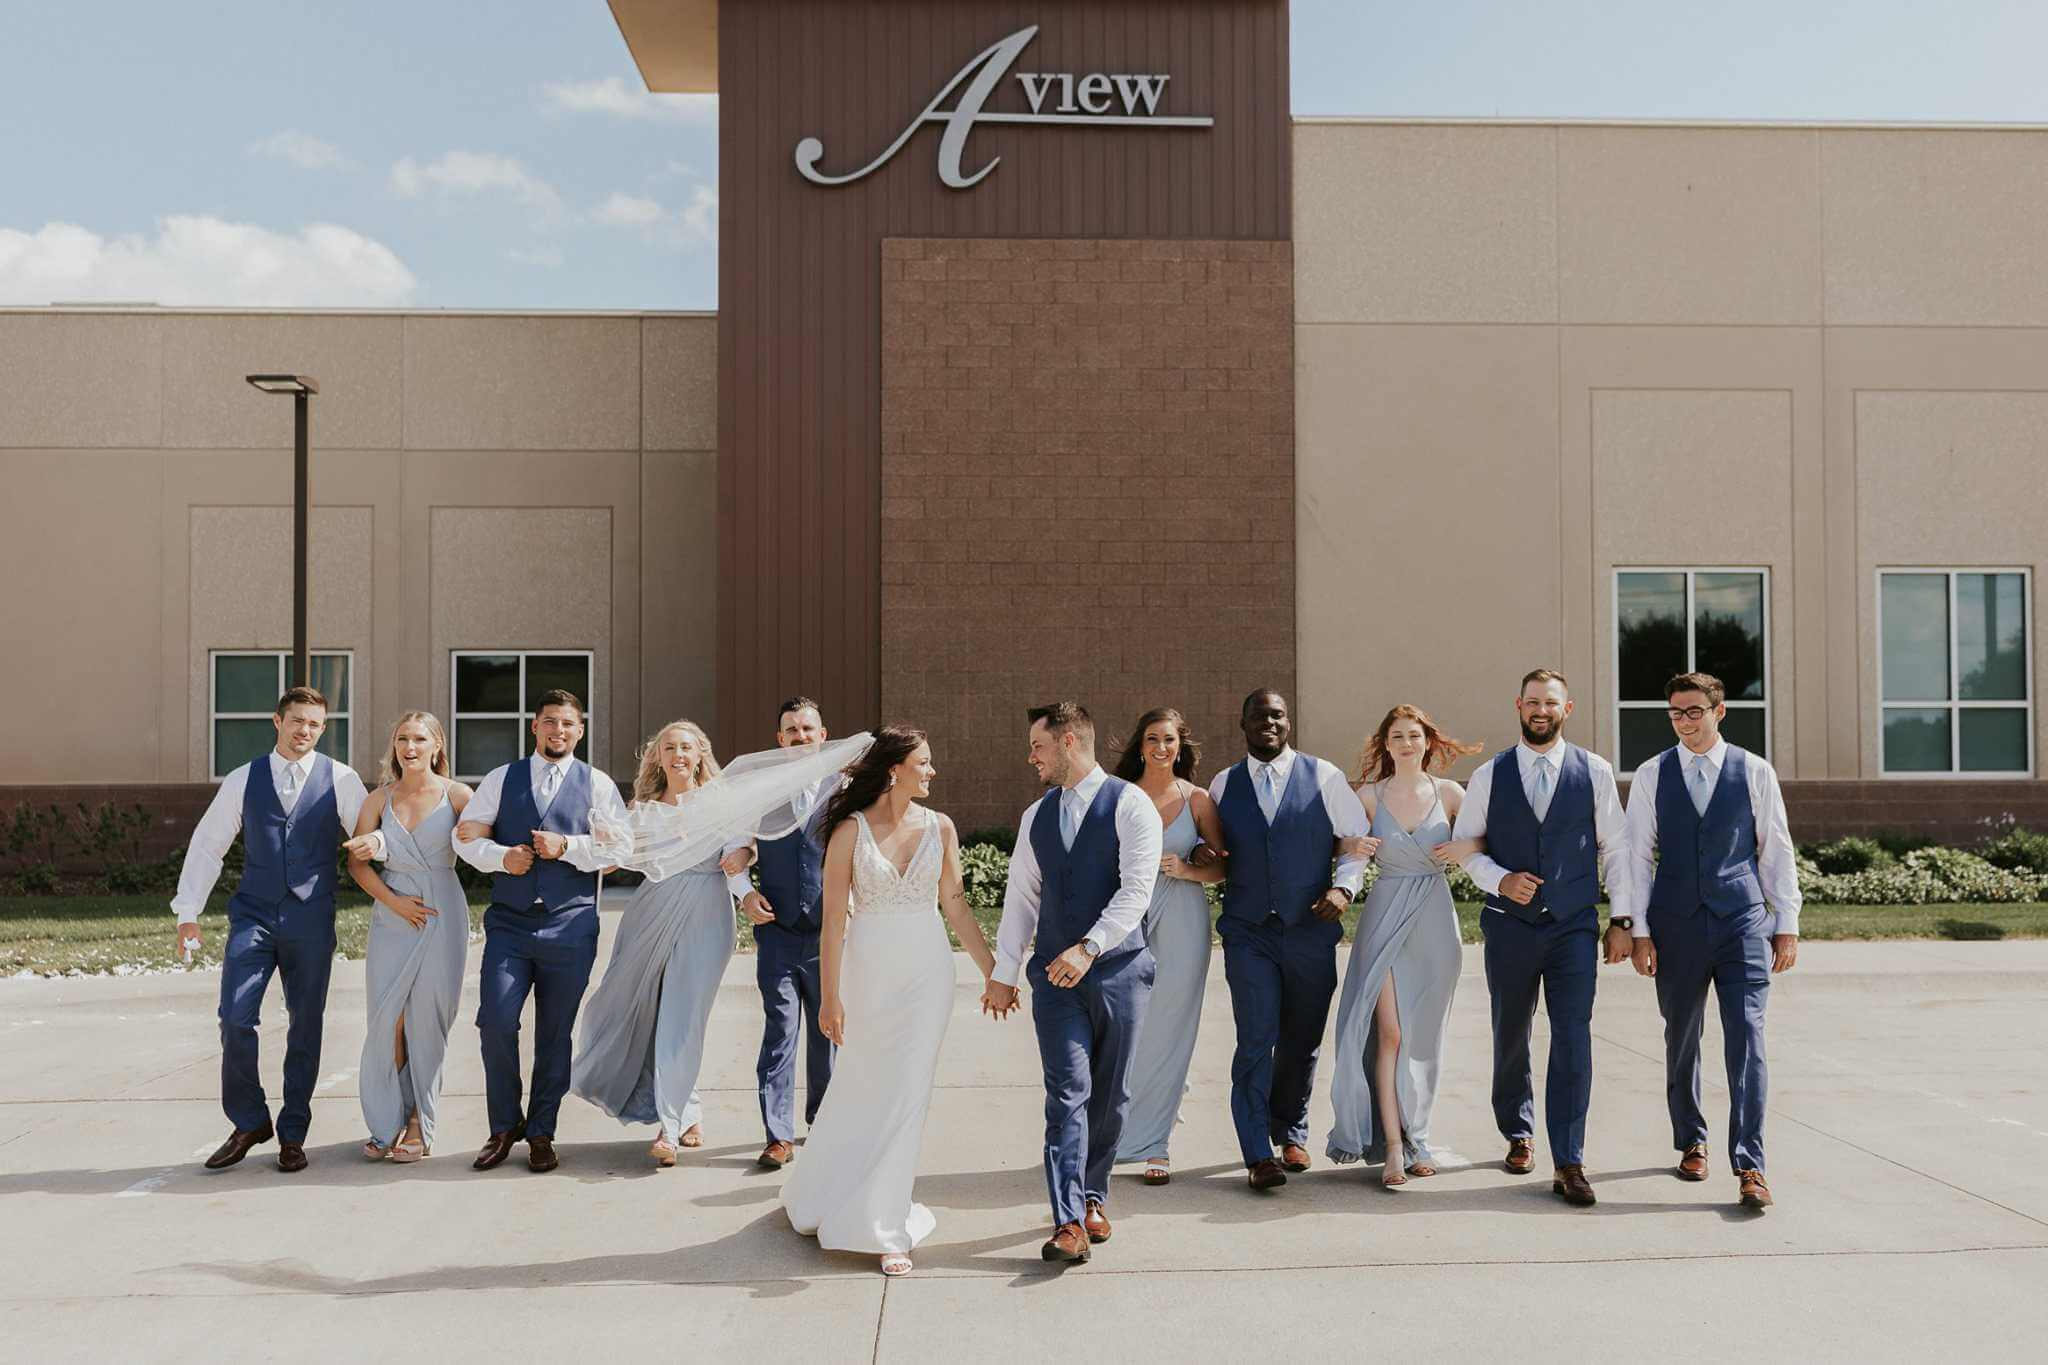 Wedding Party outside A View on State